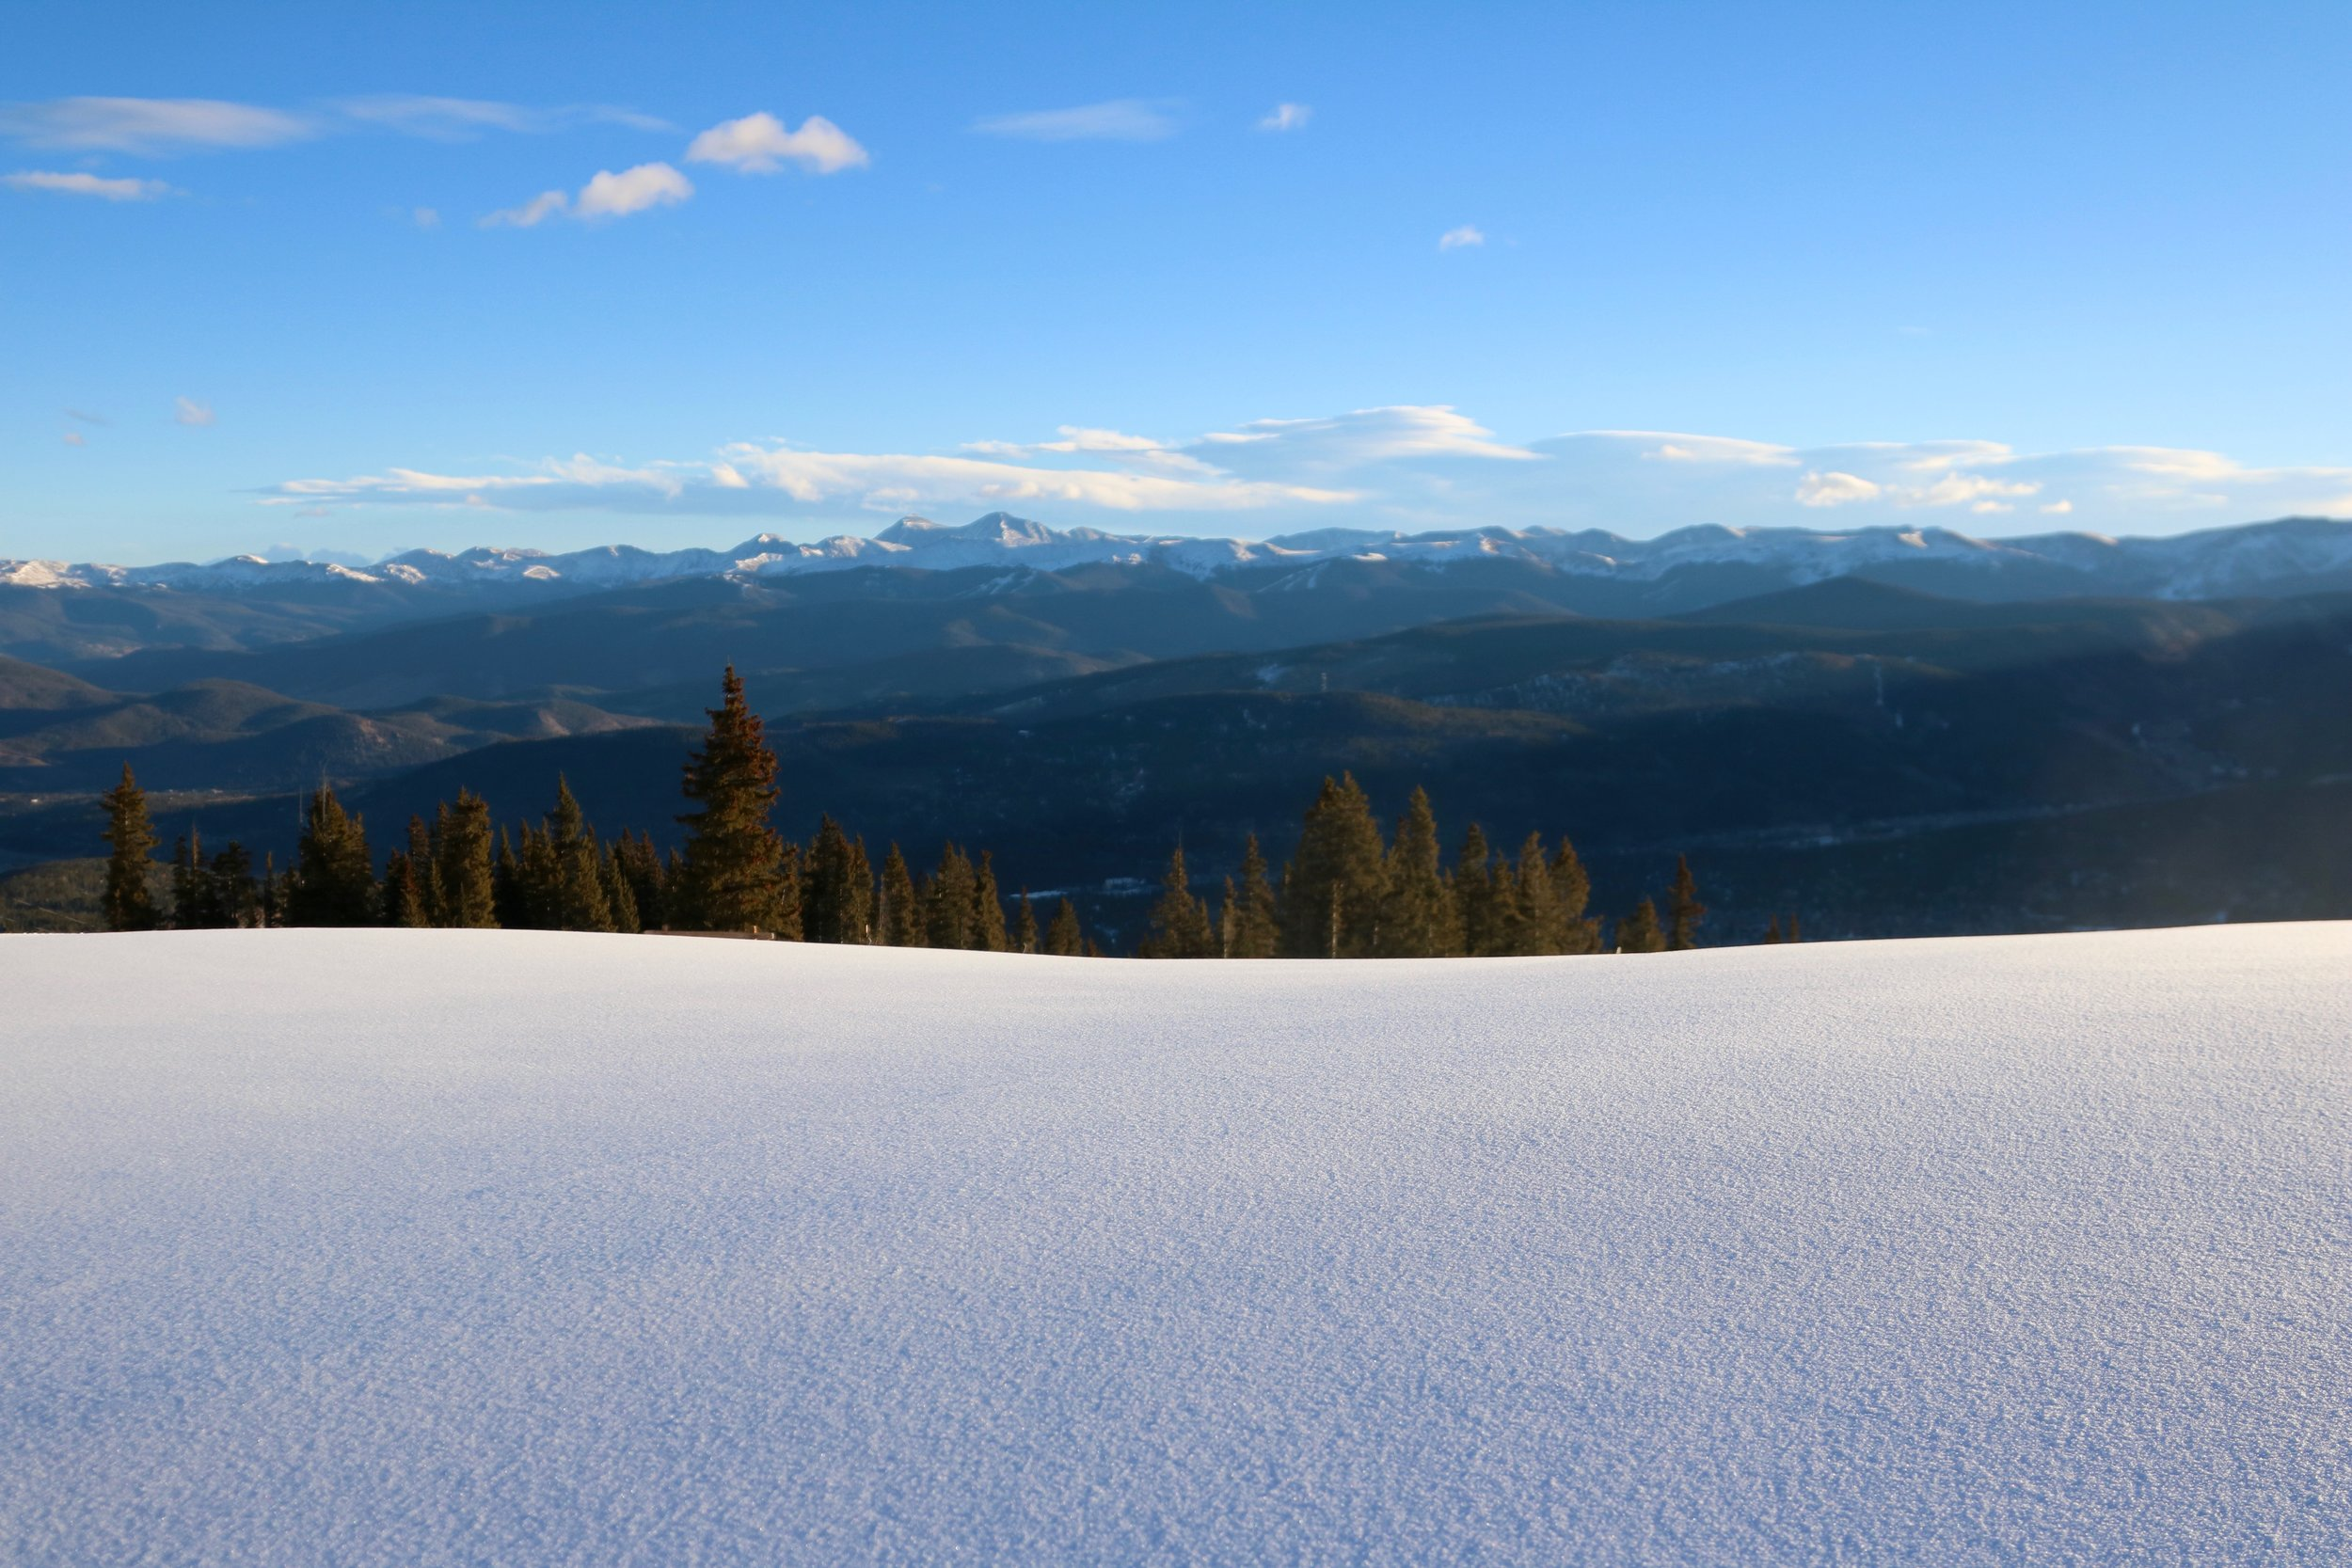 Spying on the Continental Divide from the top of Breck's Colorado SuperChair (Brent Clark, Breckenridge)